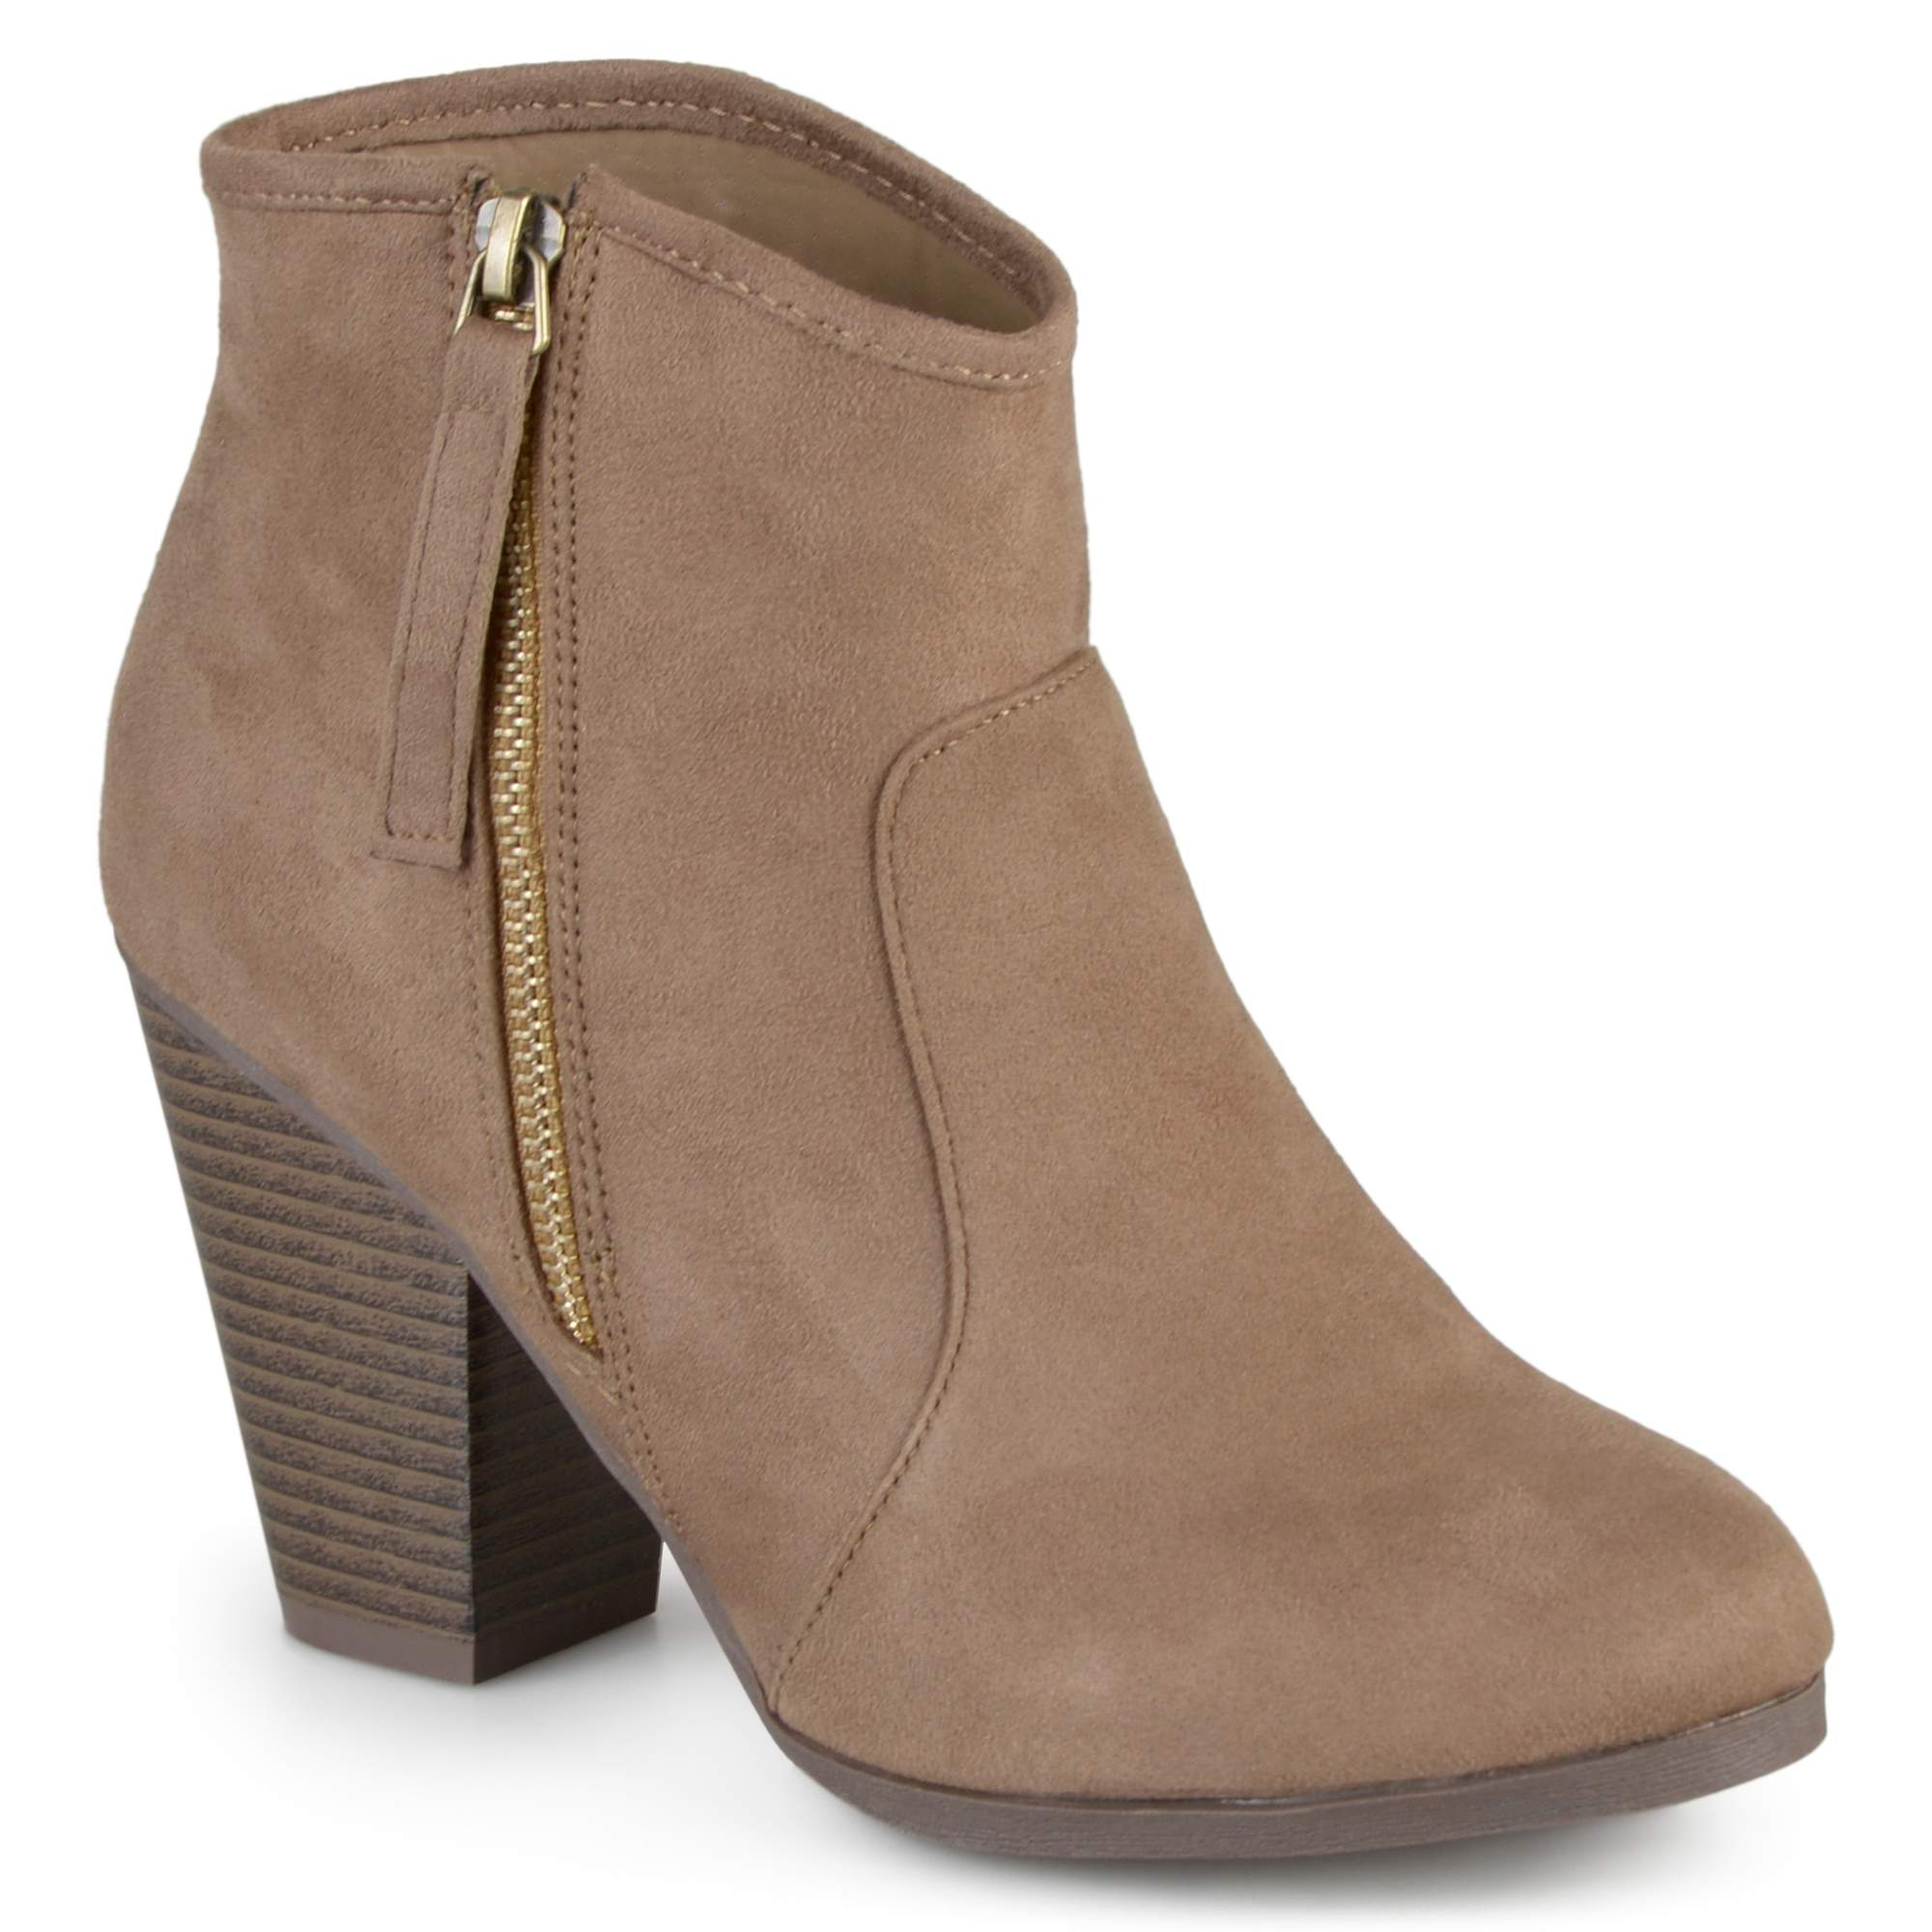 a5cc2b19eda Brinley Co. Women's Wide Width Faux Suede High Heel Ankle Boots